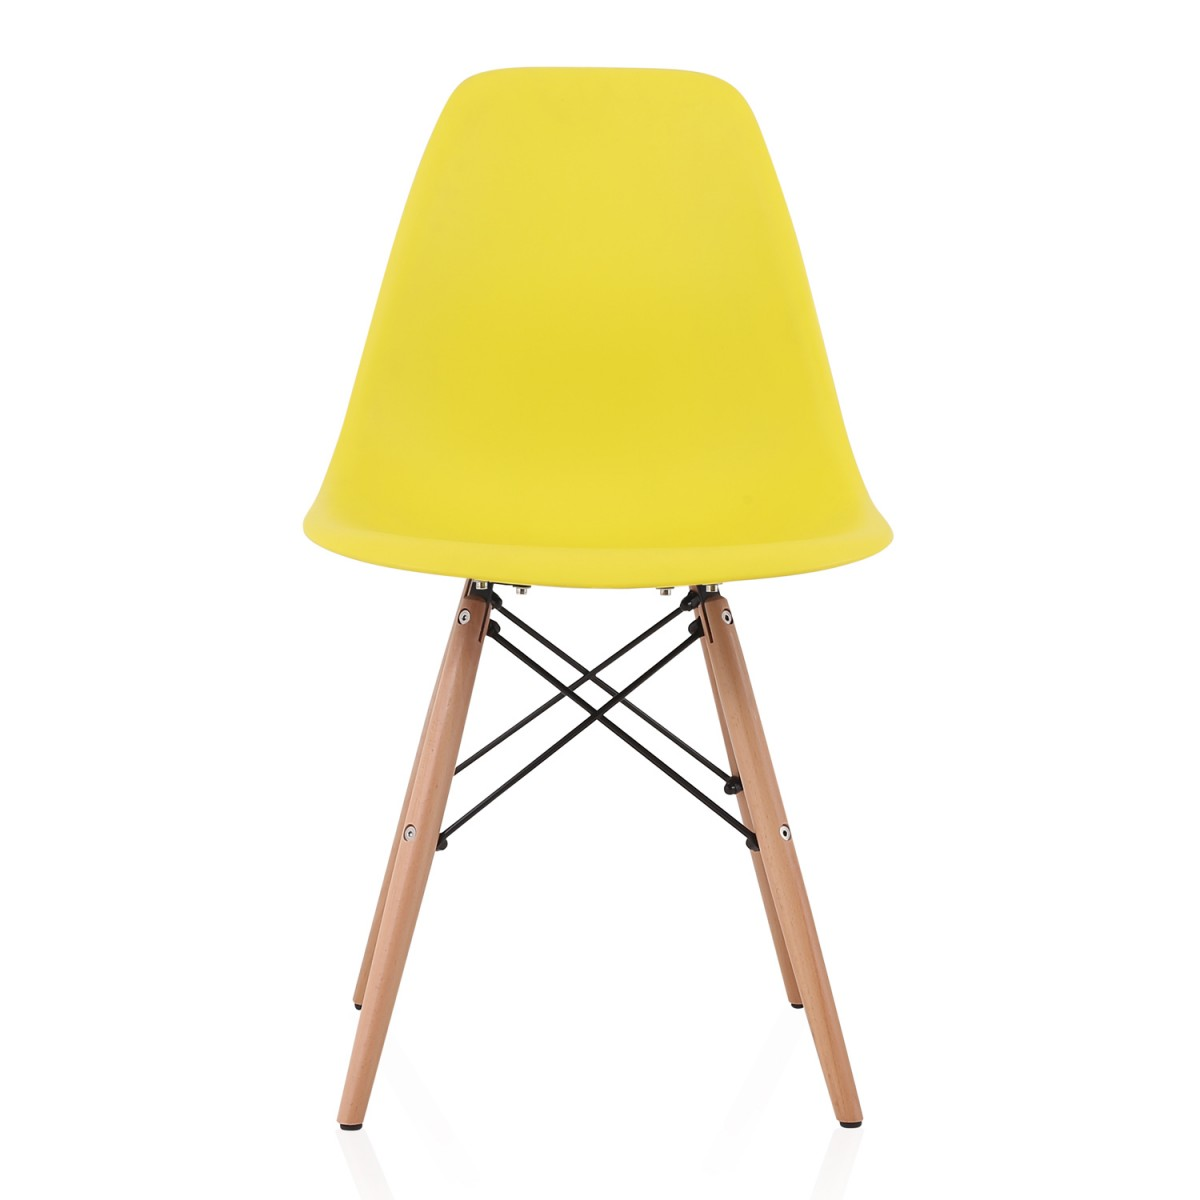 Dsw Dining Chair Light Yellow Beech Eames Retro Style Eiffel